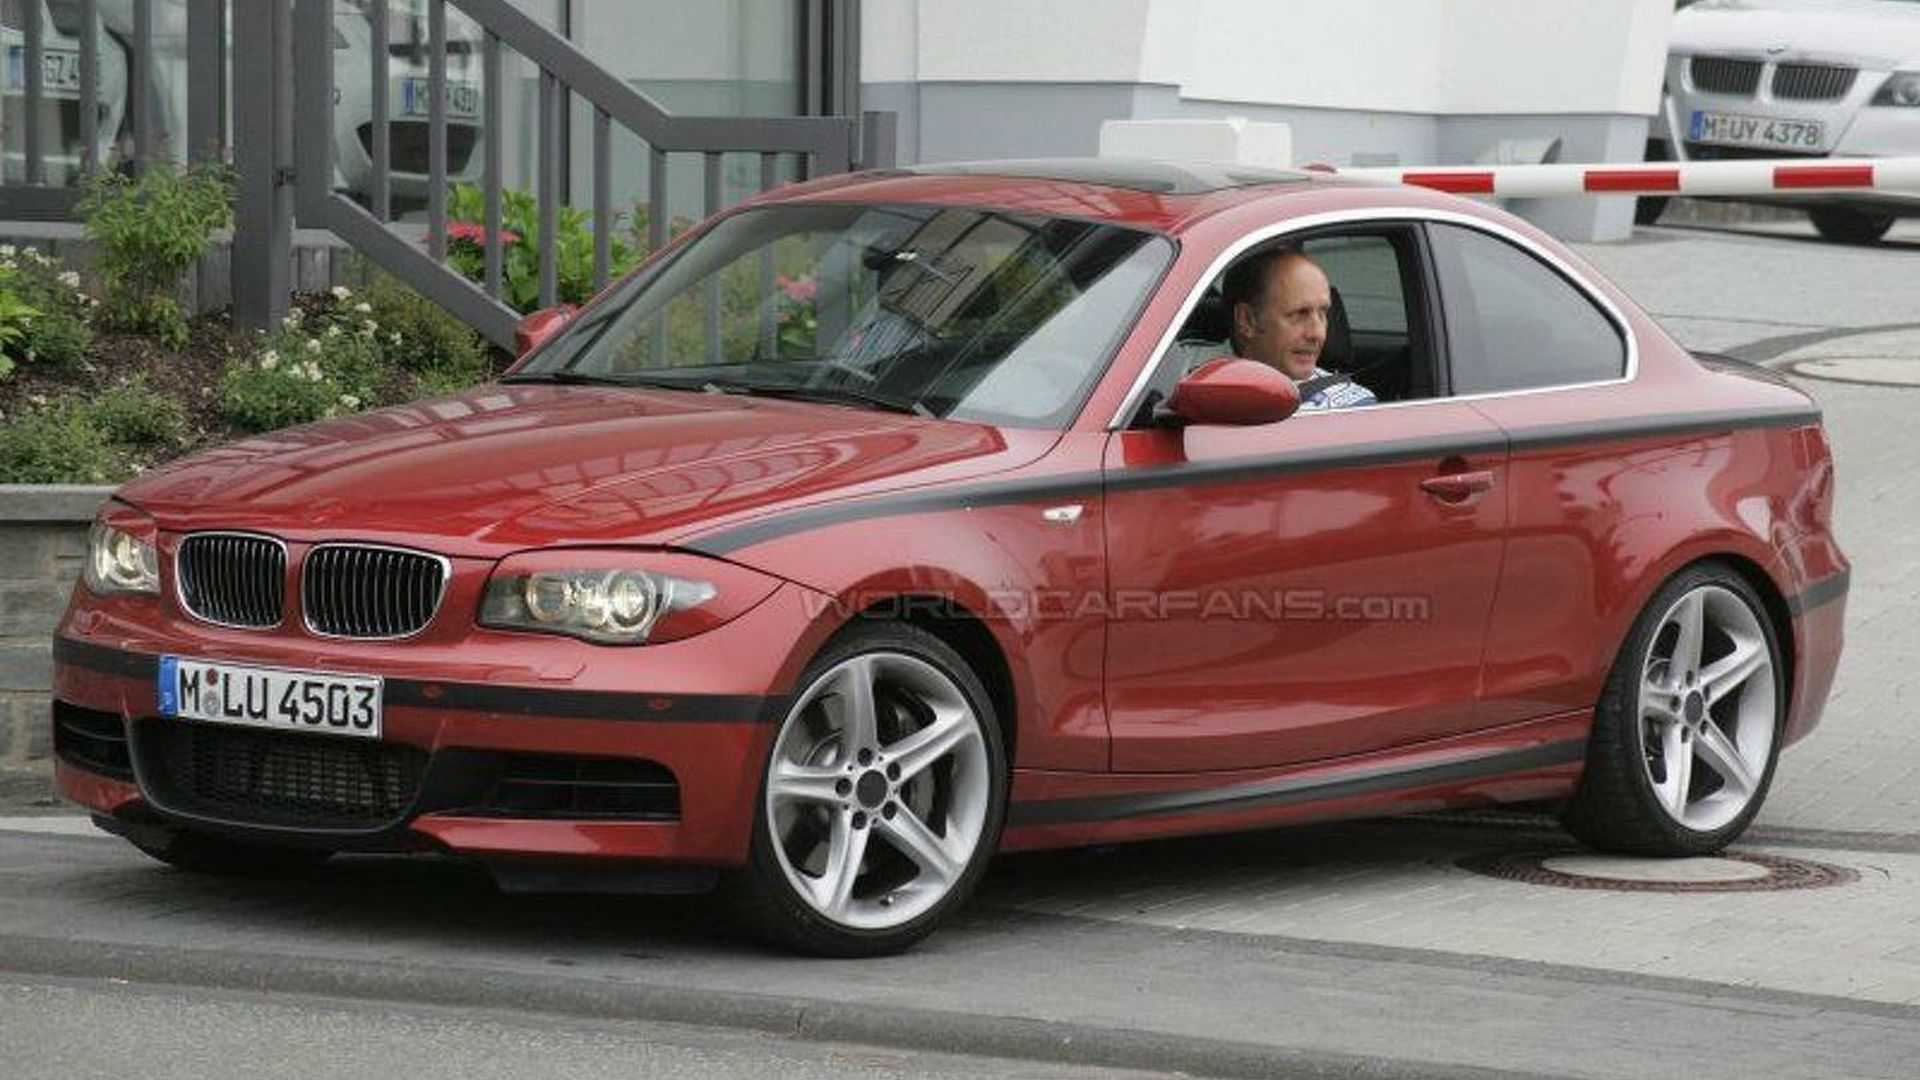 BMW's 1 Series Coupe Testing with Hans Joachim Stuck